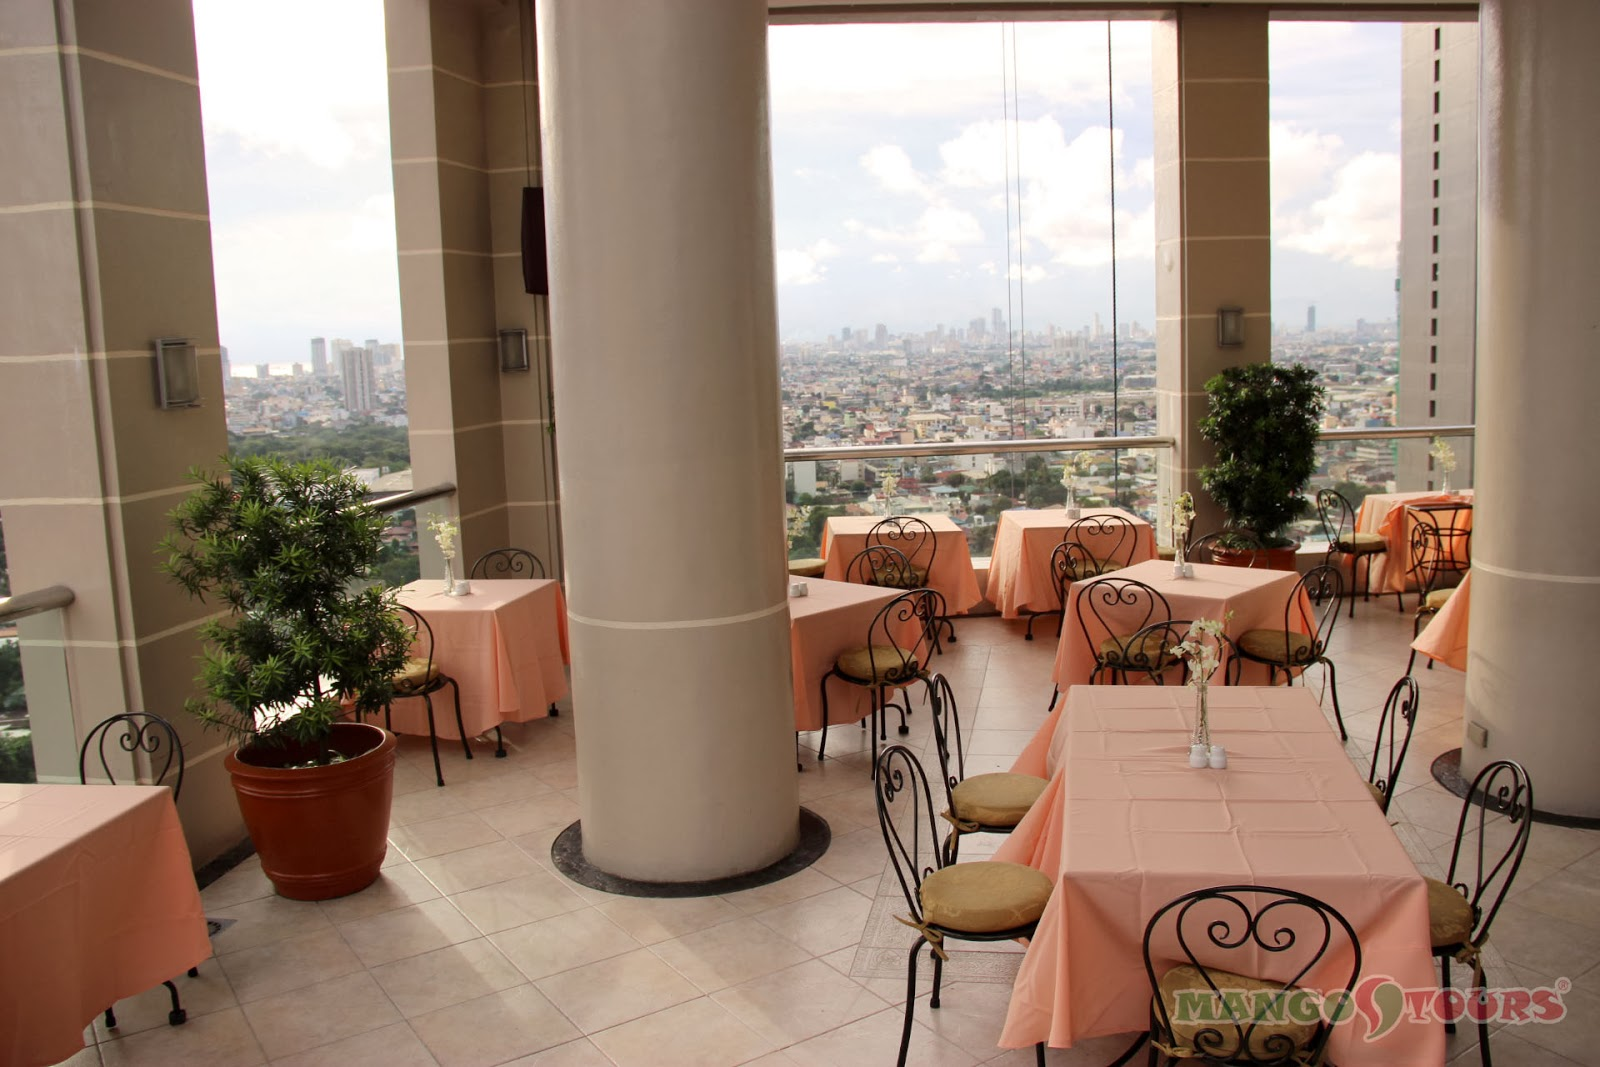 City Garden Hotel Makati roof deck dining 2